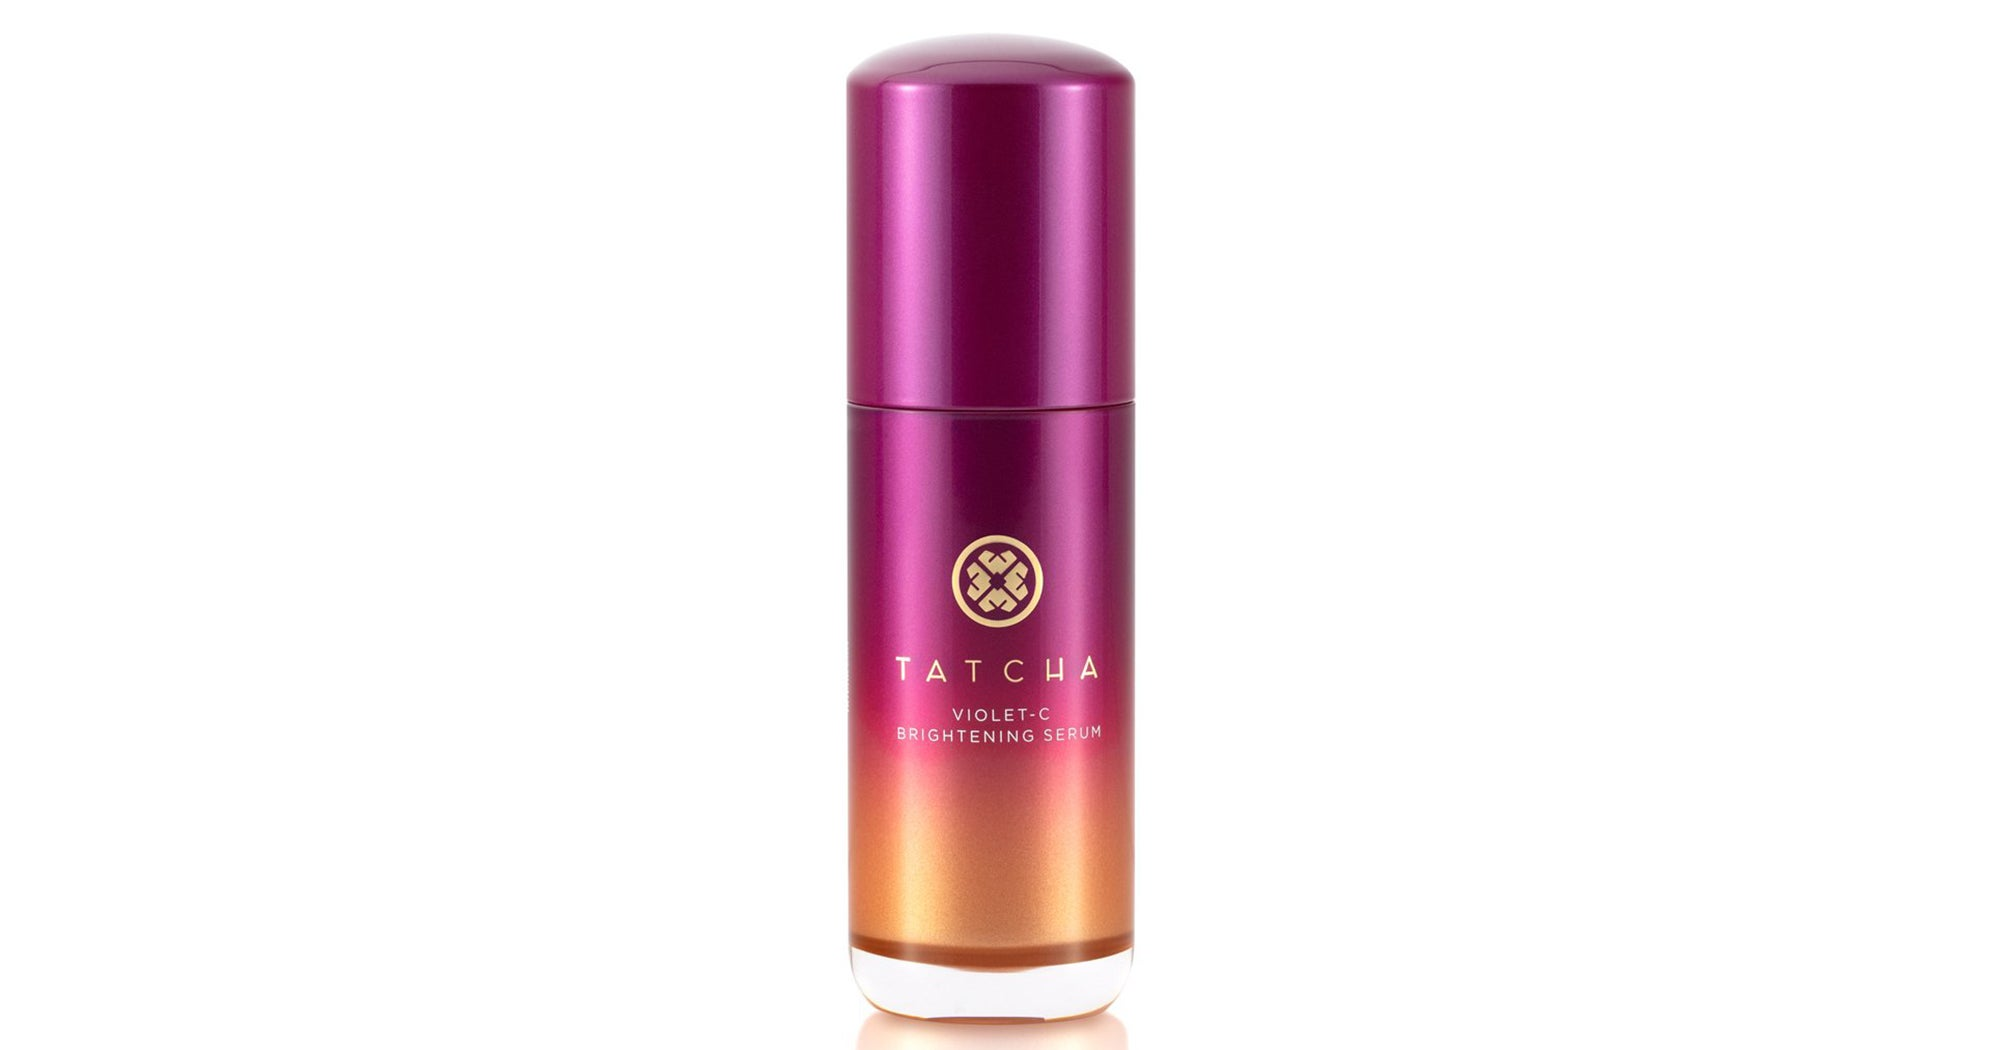 Every Tatcha Product Is 20% Off Right Now (!)